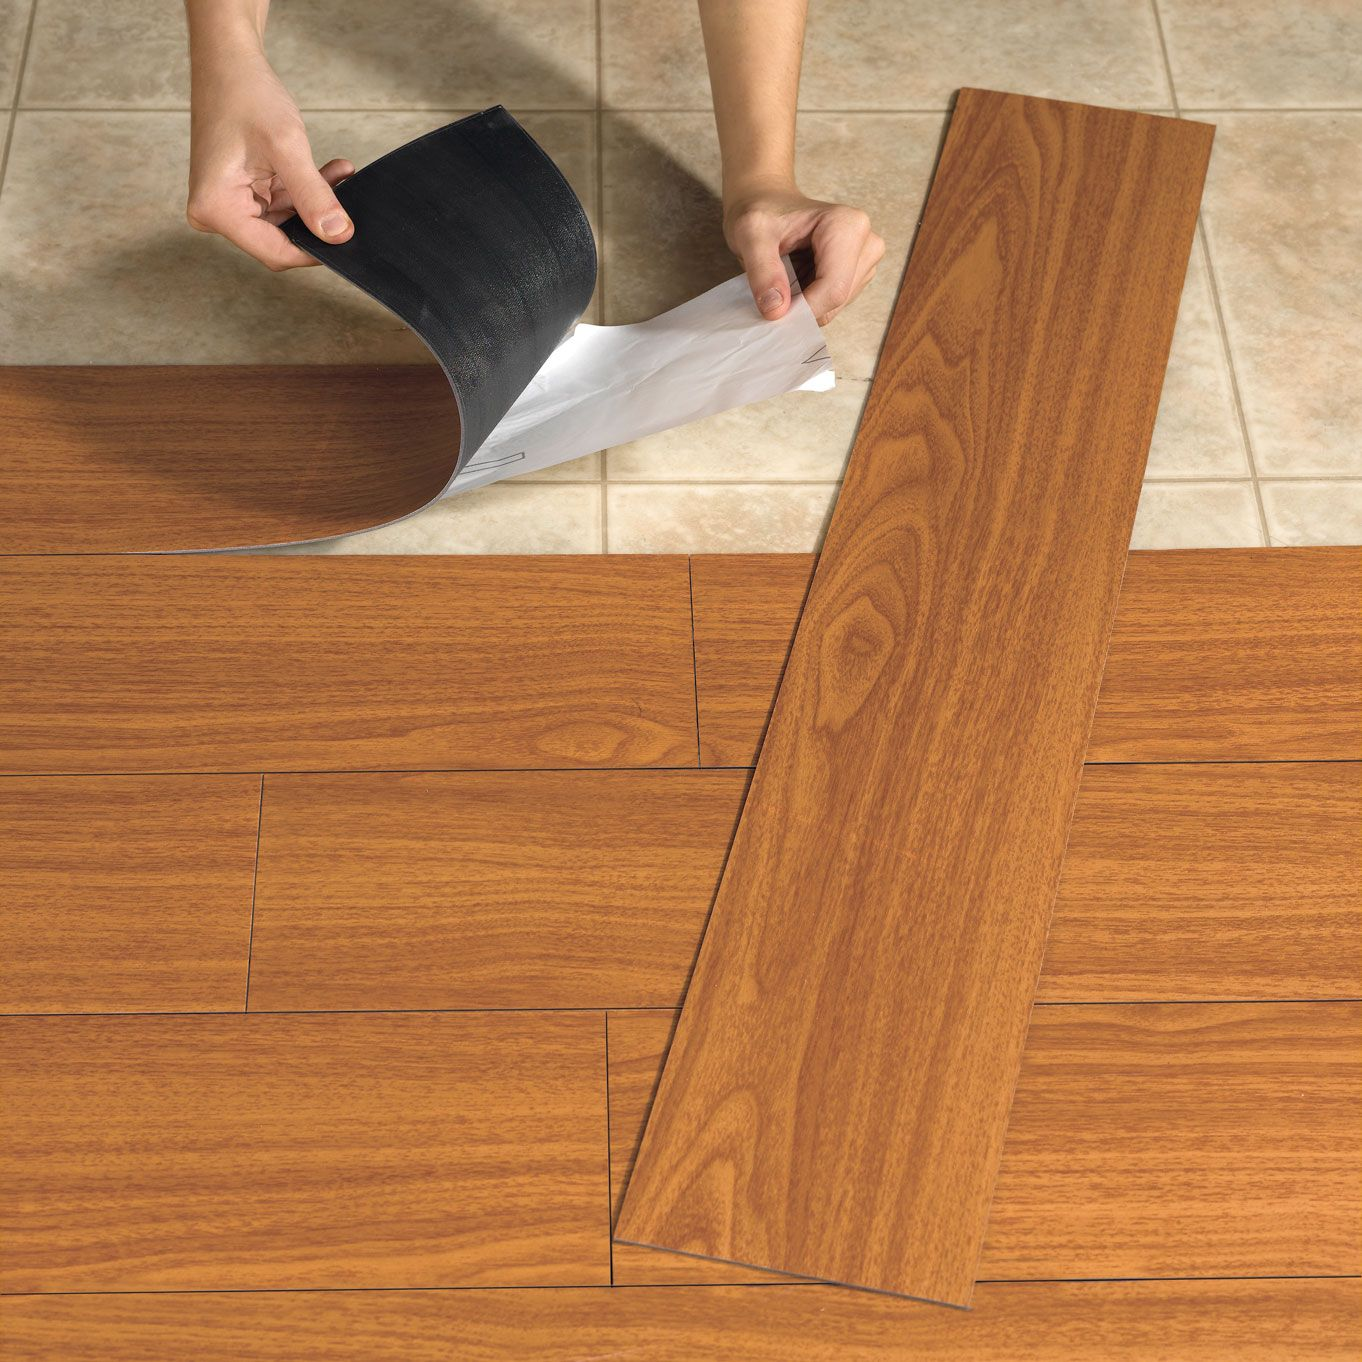 Vinyl Flooring Buy: Buy Kitchen Vinyl Flooring In Dubai, ParquetFlooring.ae